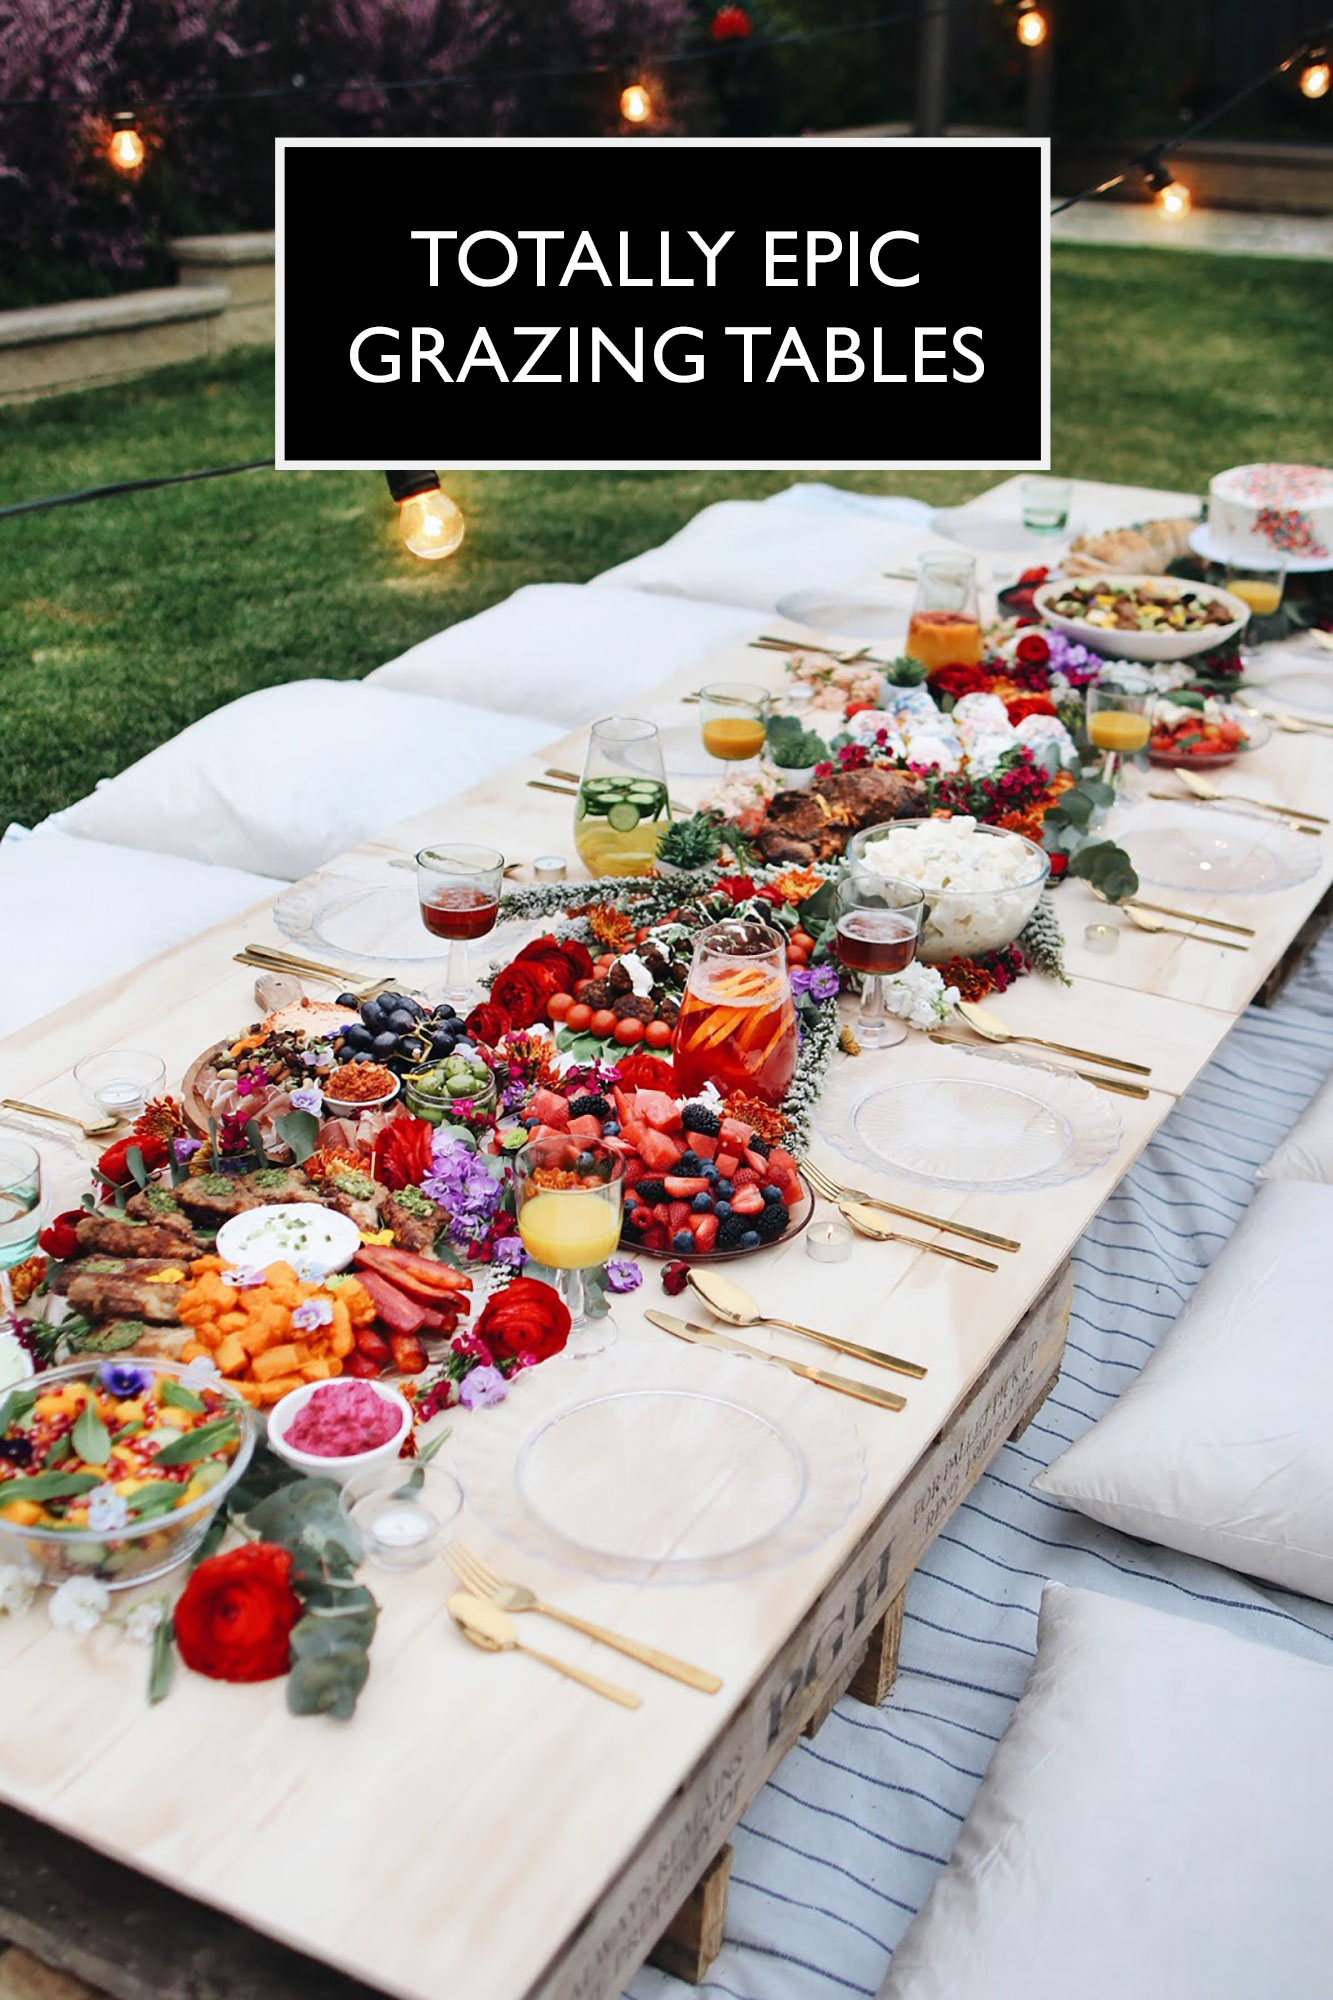 epic grazing tables